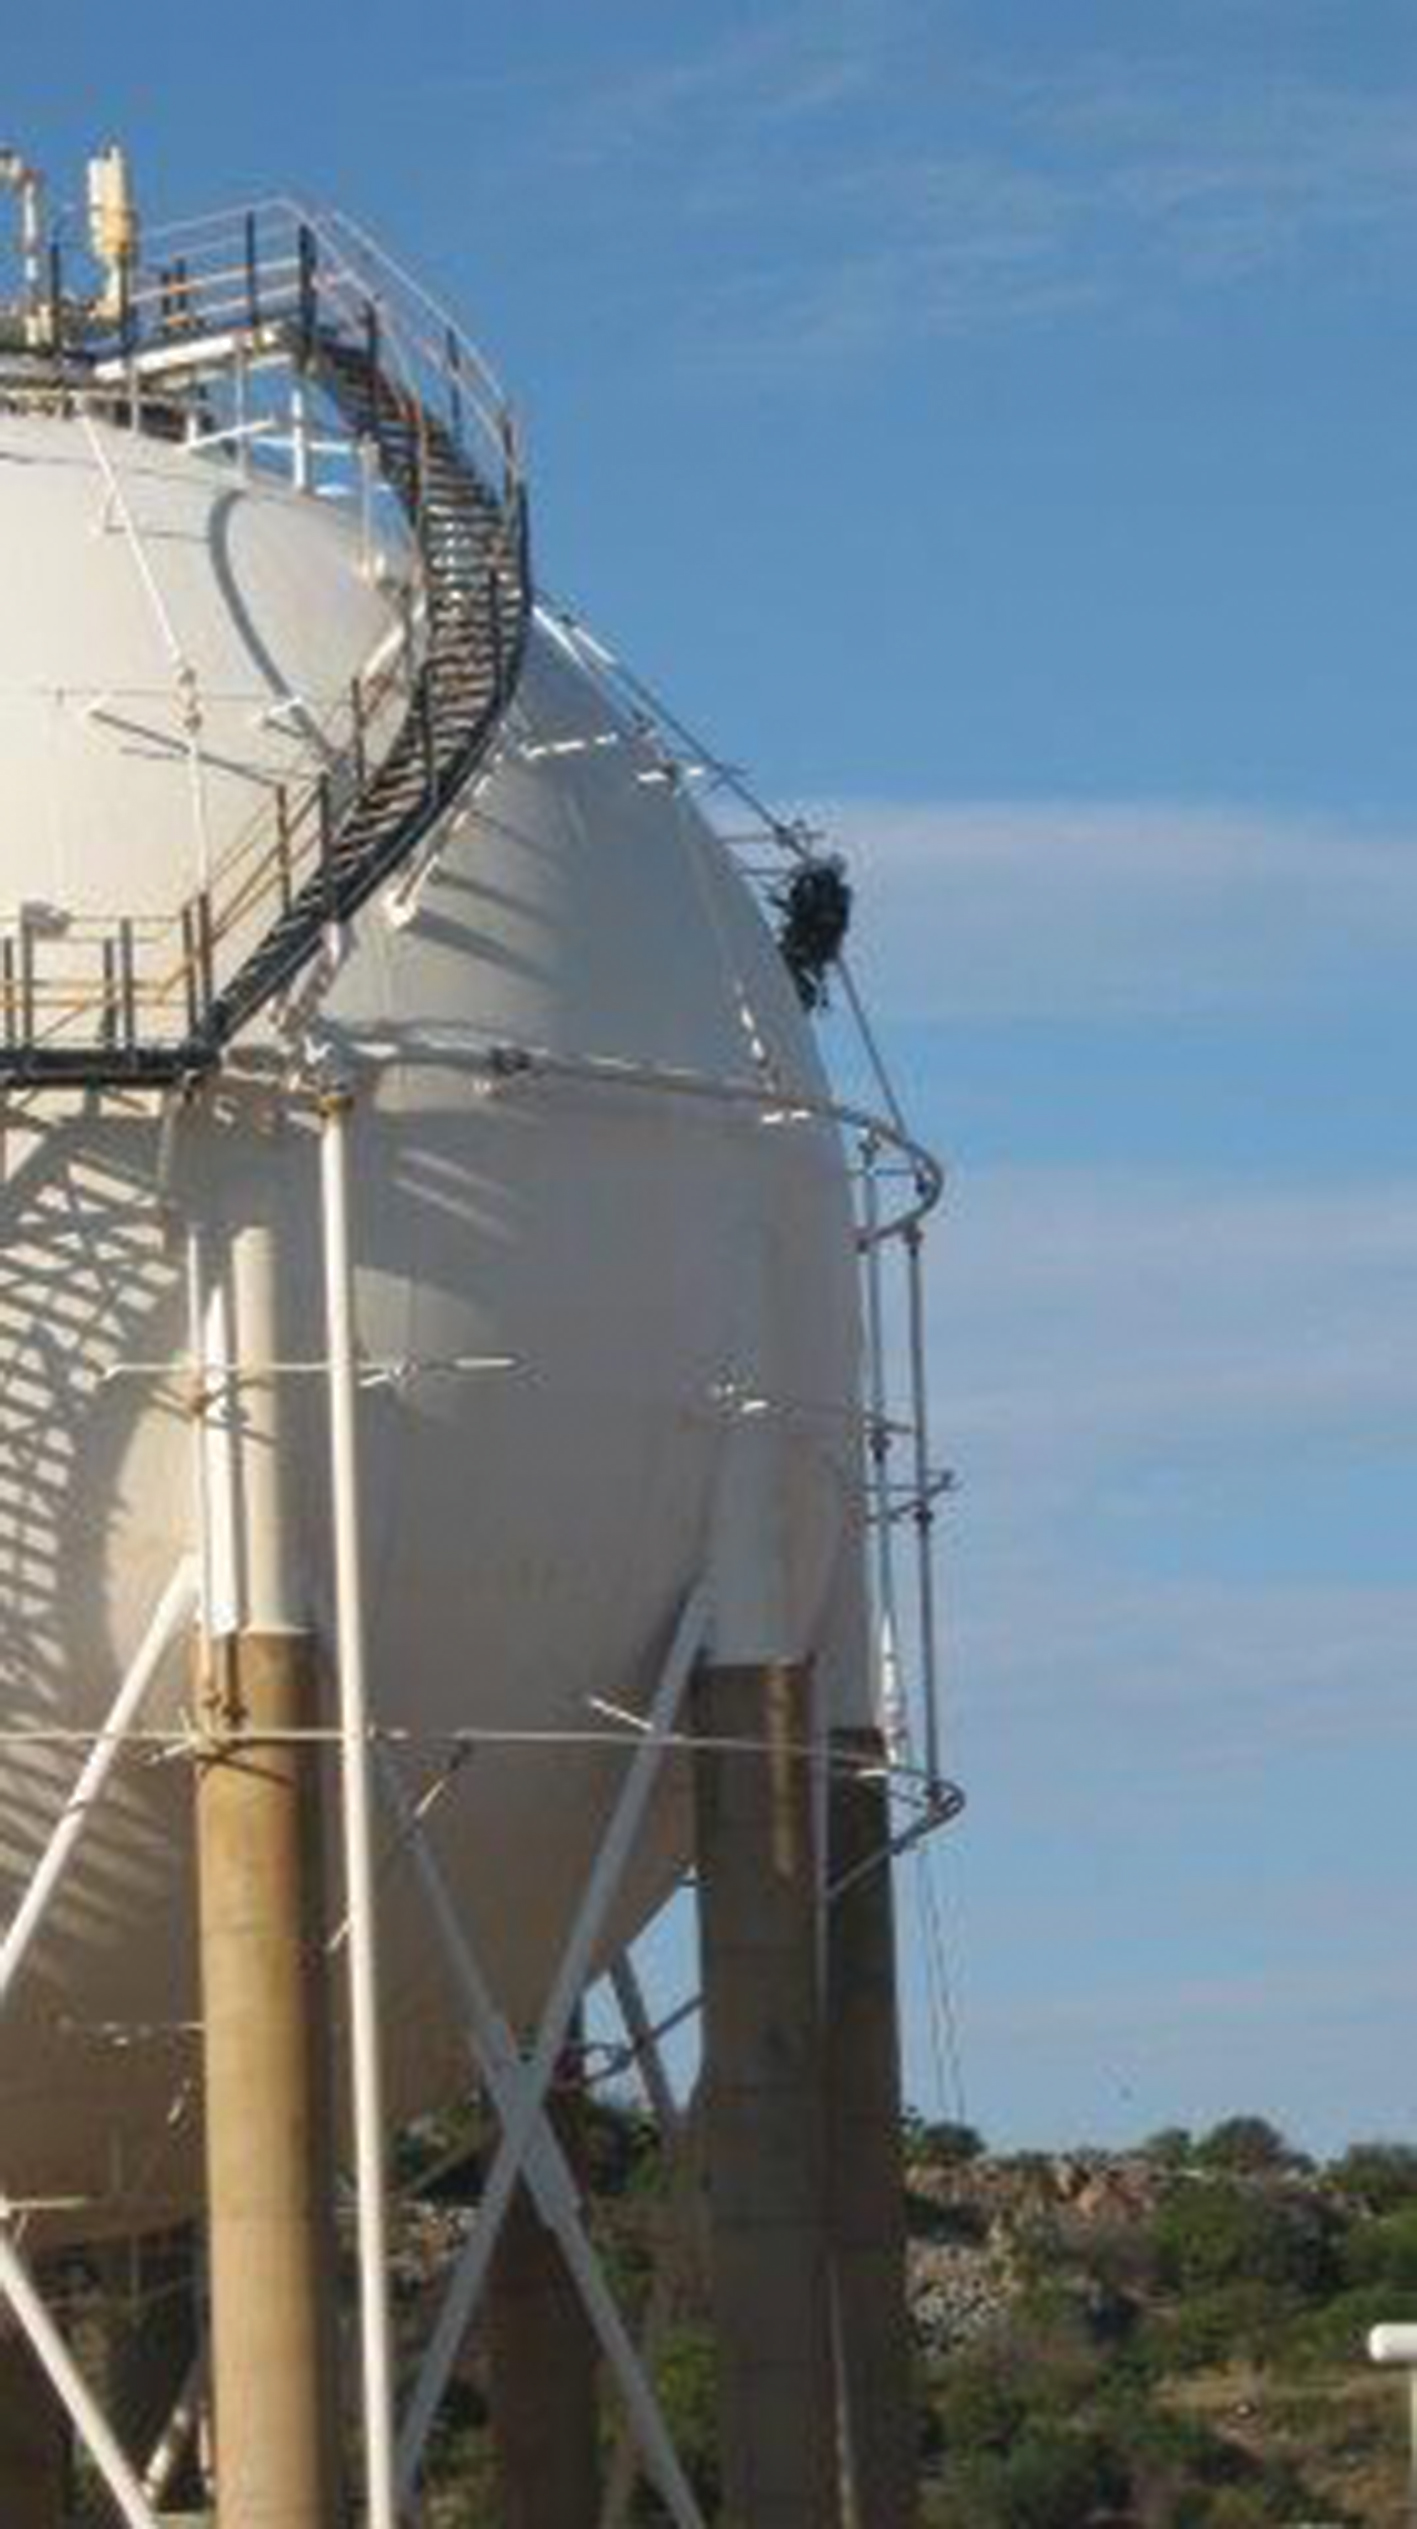 UHP cleaning of large petrochemical tank | Credible Carbon